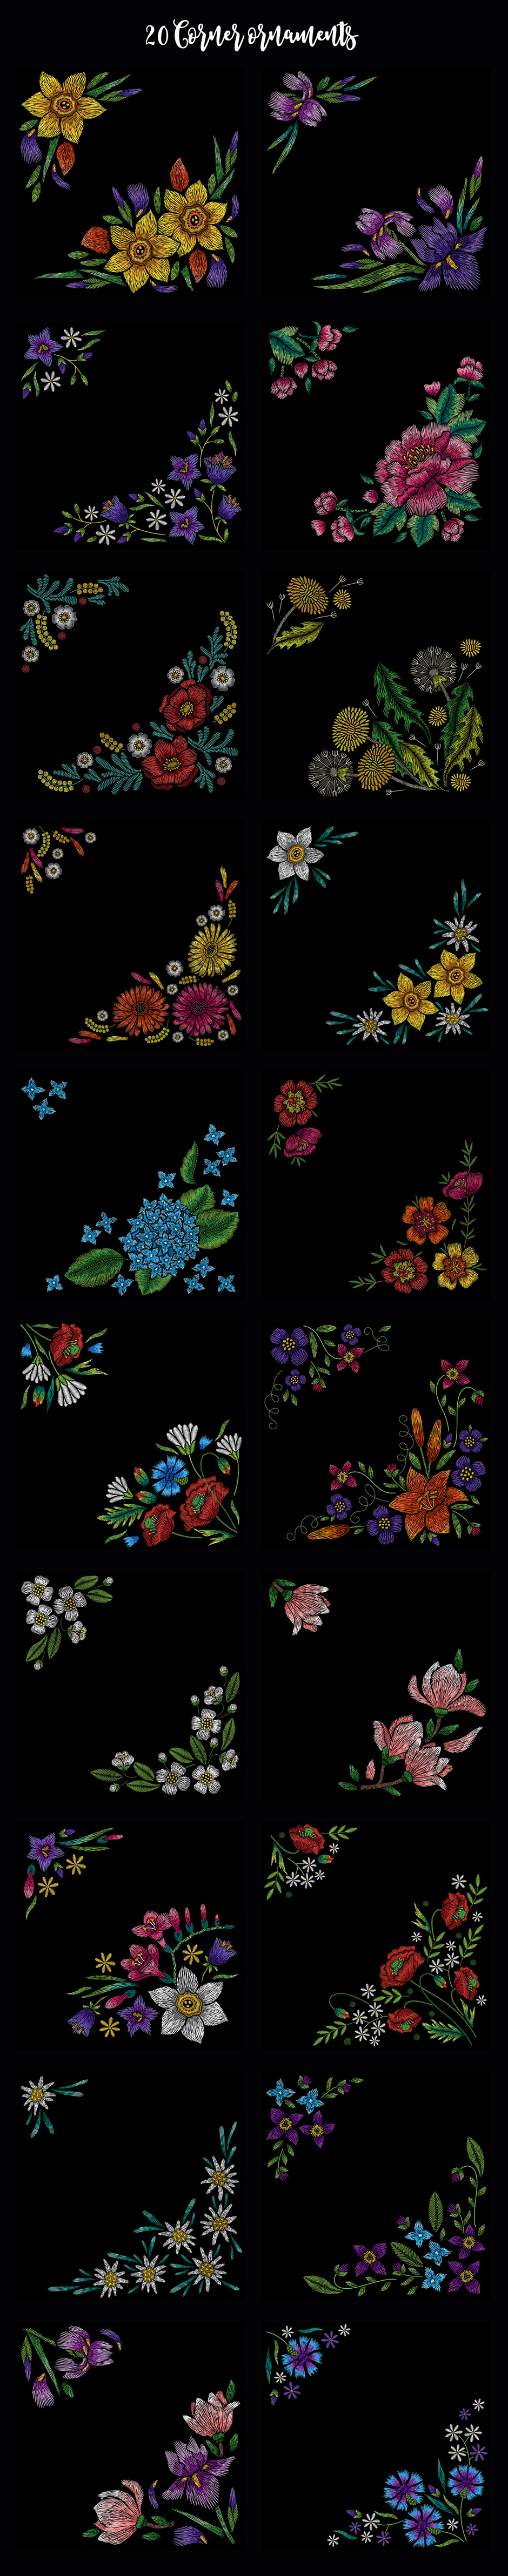 embroidery elements